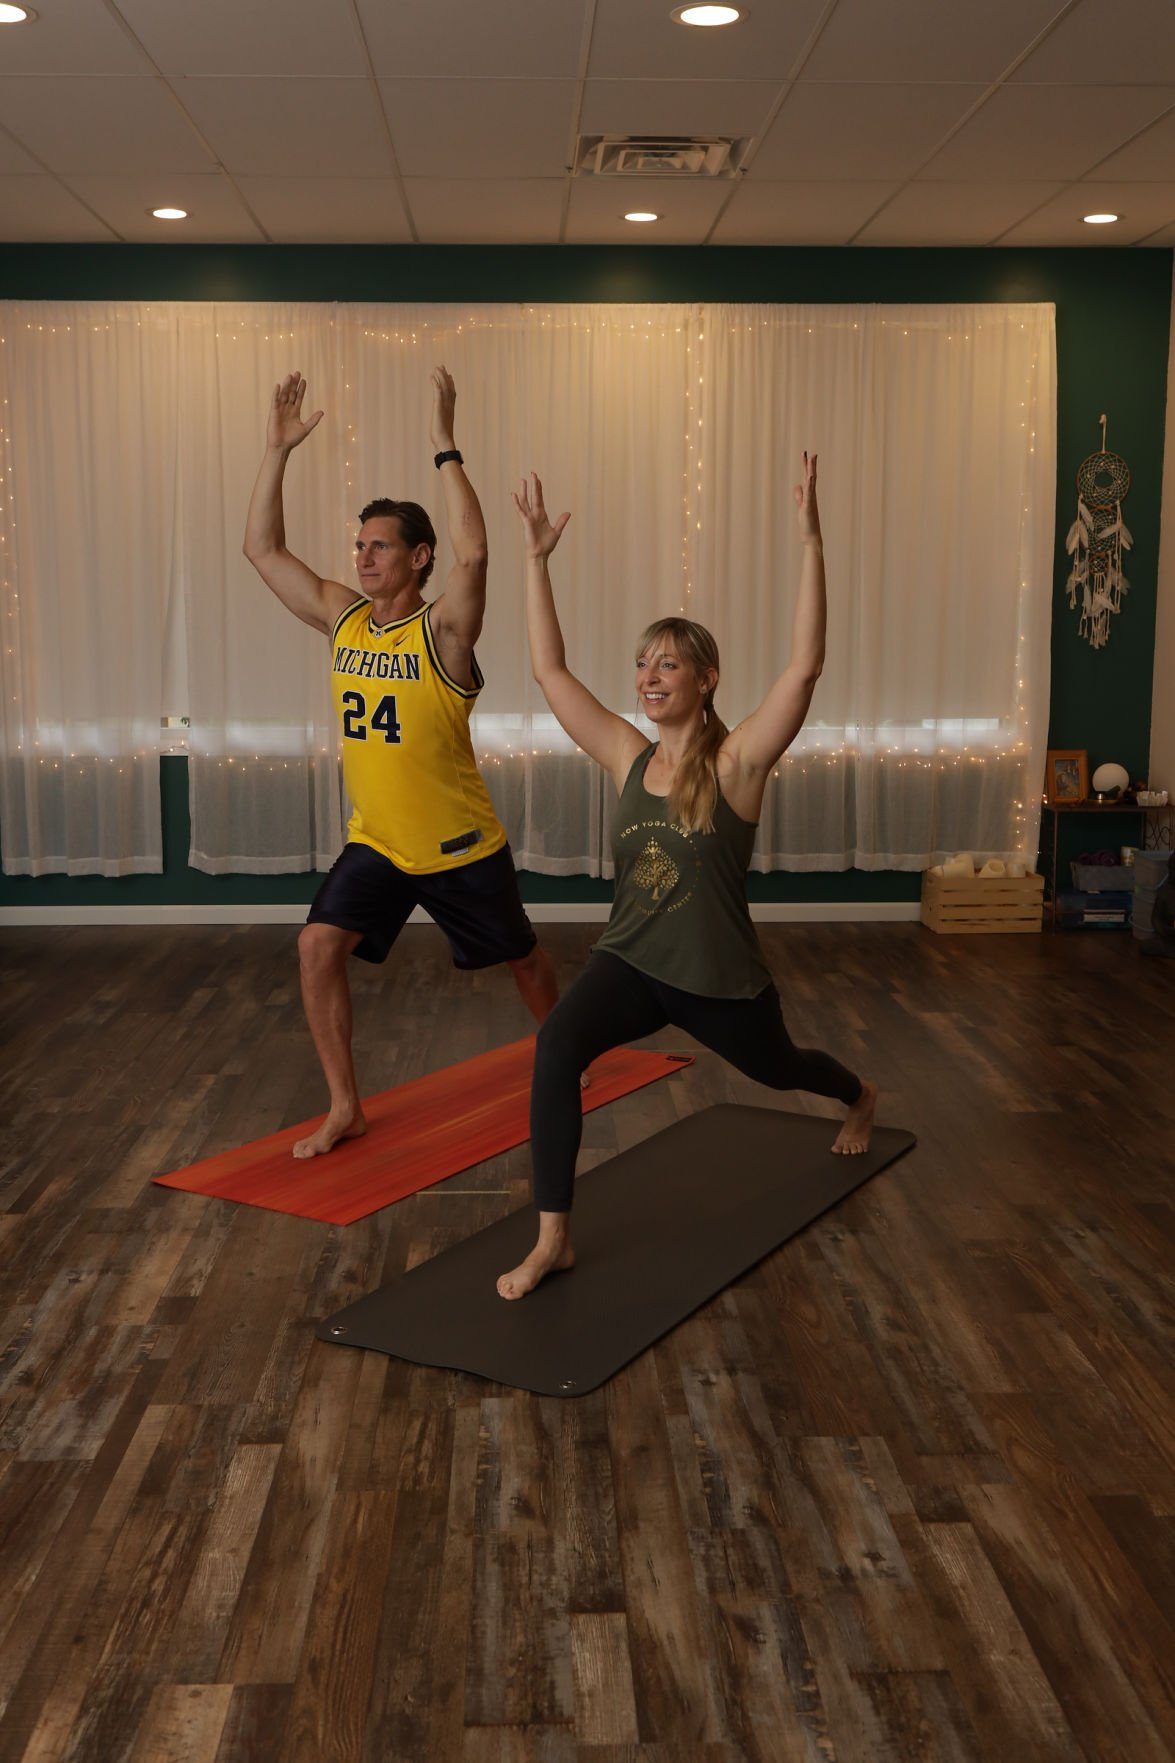 More men finding the agility, presence benefits of yoga